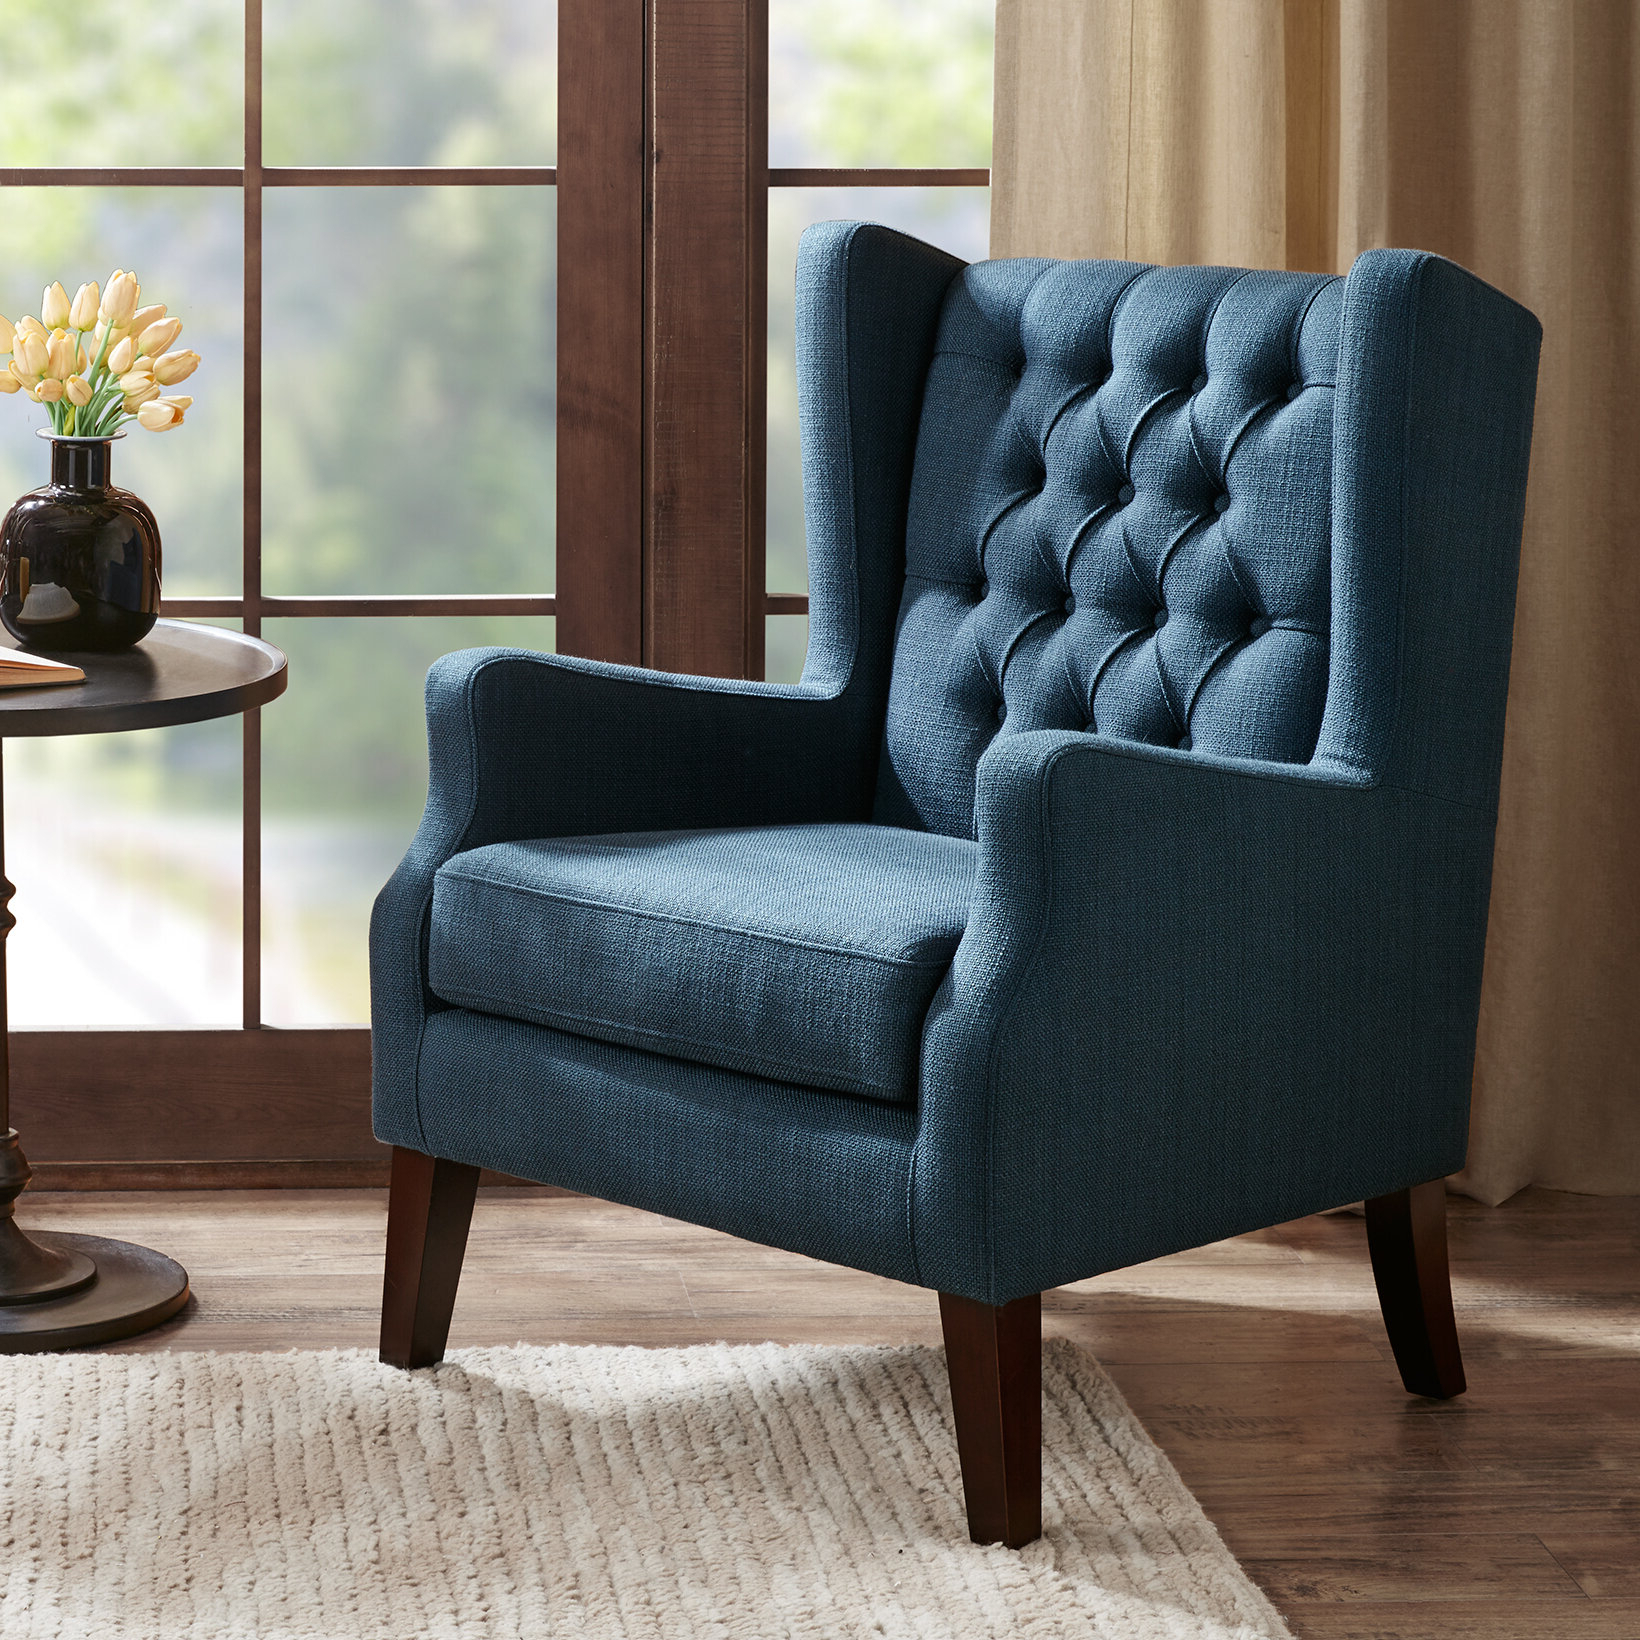 Latest Allis Tufted Polyester Blend Wingback Chairs Regarding Allis Wingback Chair (View 2 of 20)